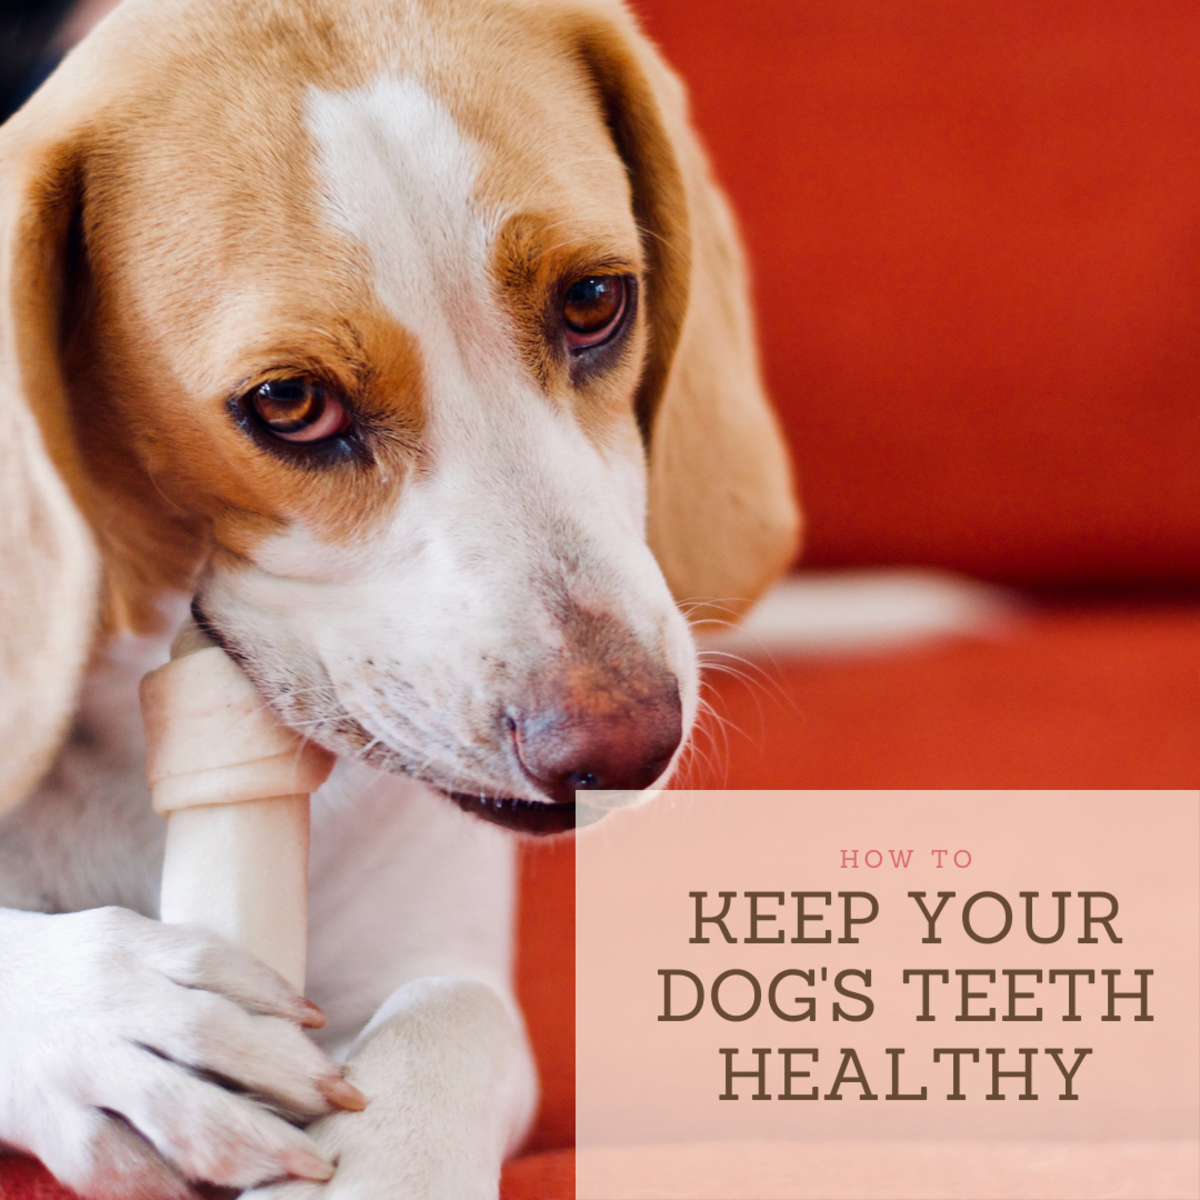 Oral health is just as important in dogs as it is in humans.